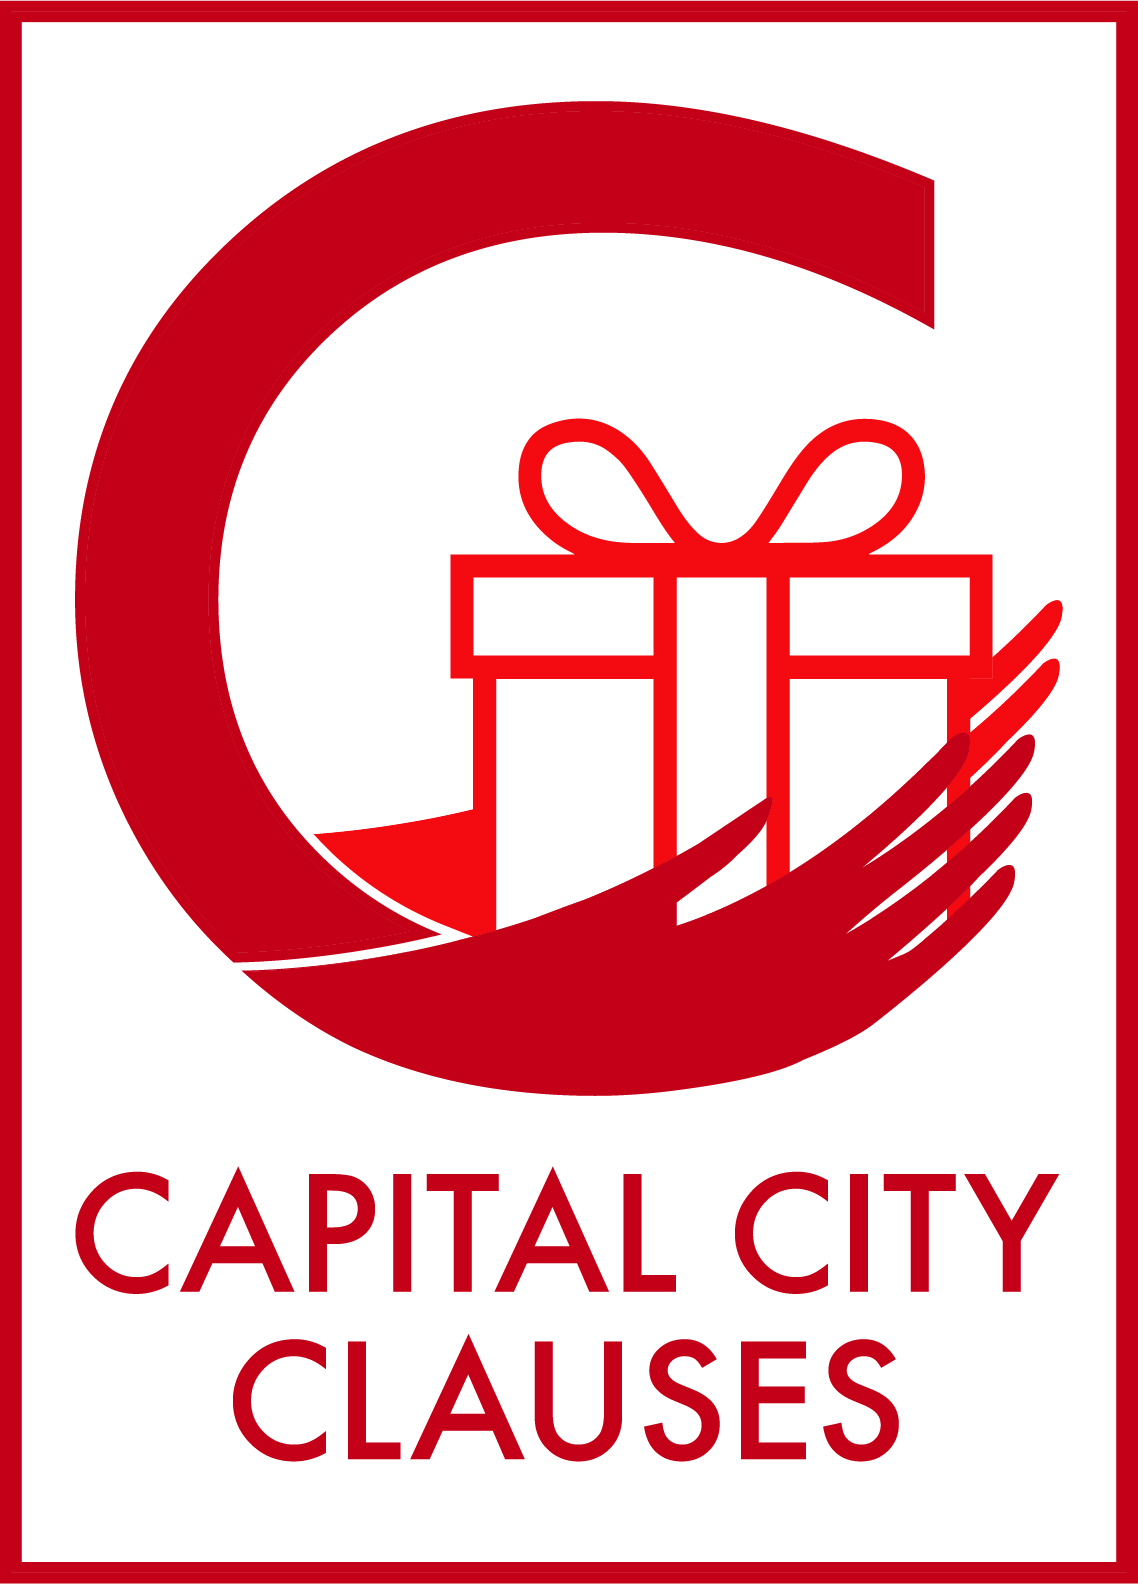 Capital City Clauses